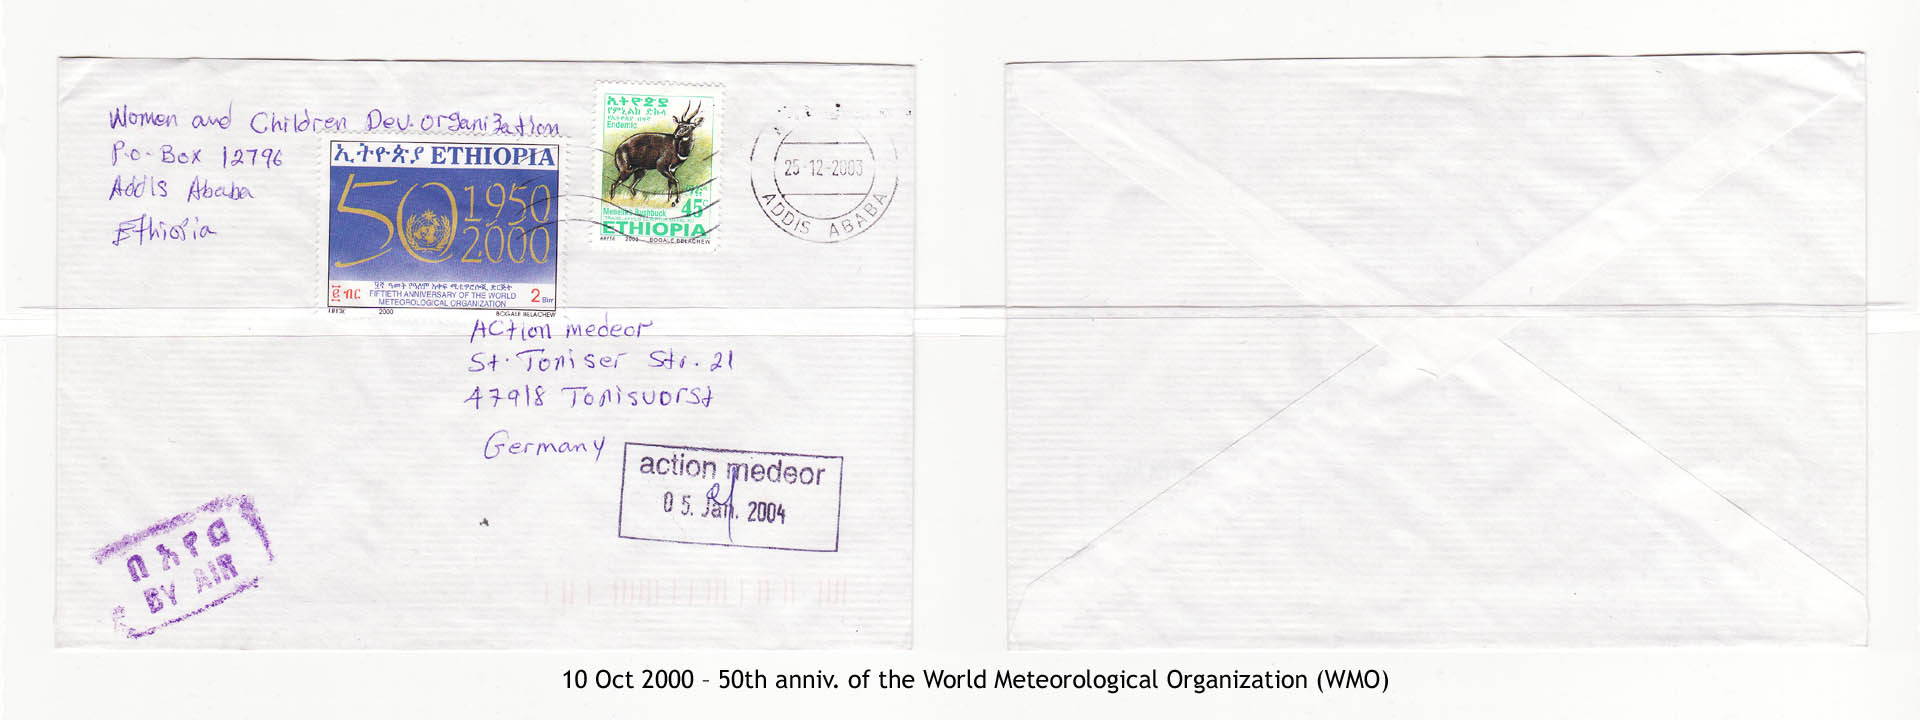 20001010 – 50th anniv. of the World Meteorological Organization (WMO)